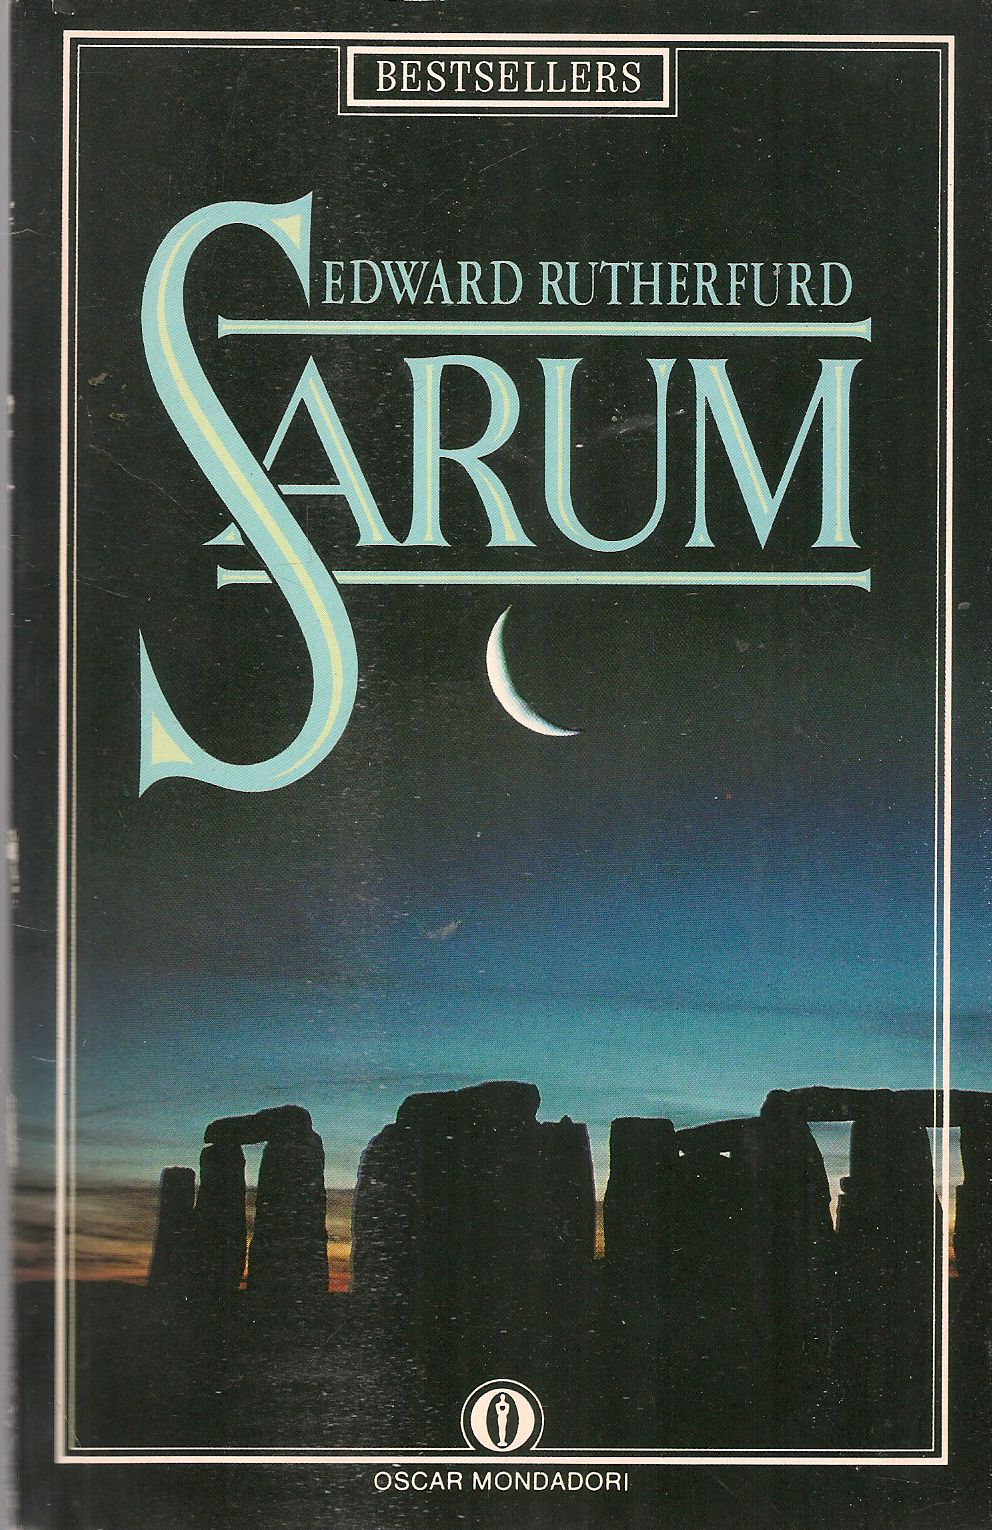 SARUM - EDWARD RUTHERFURD